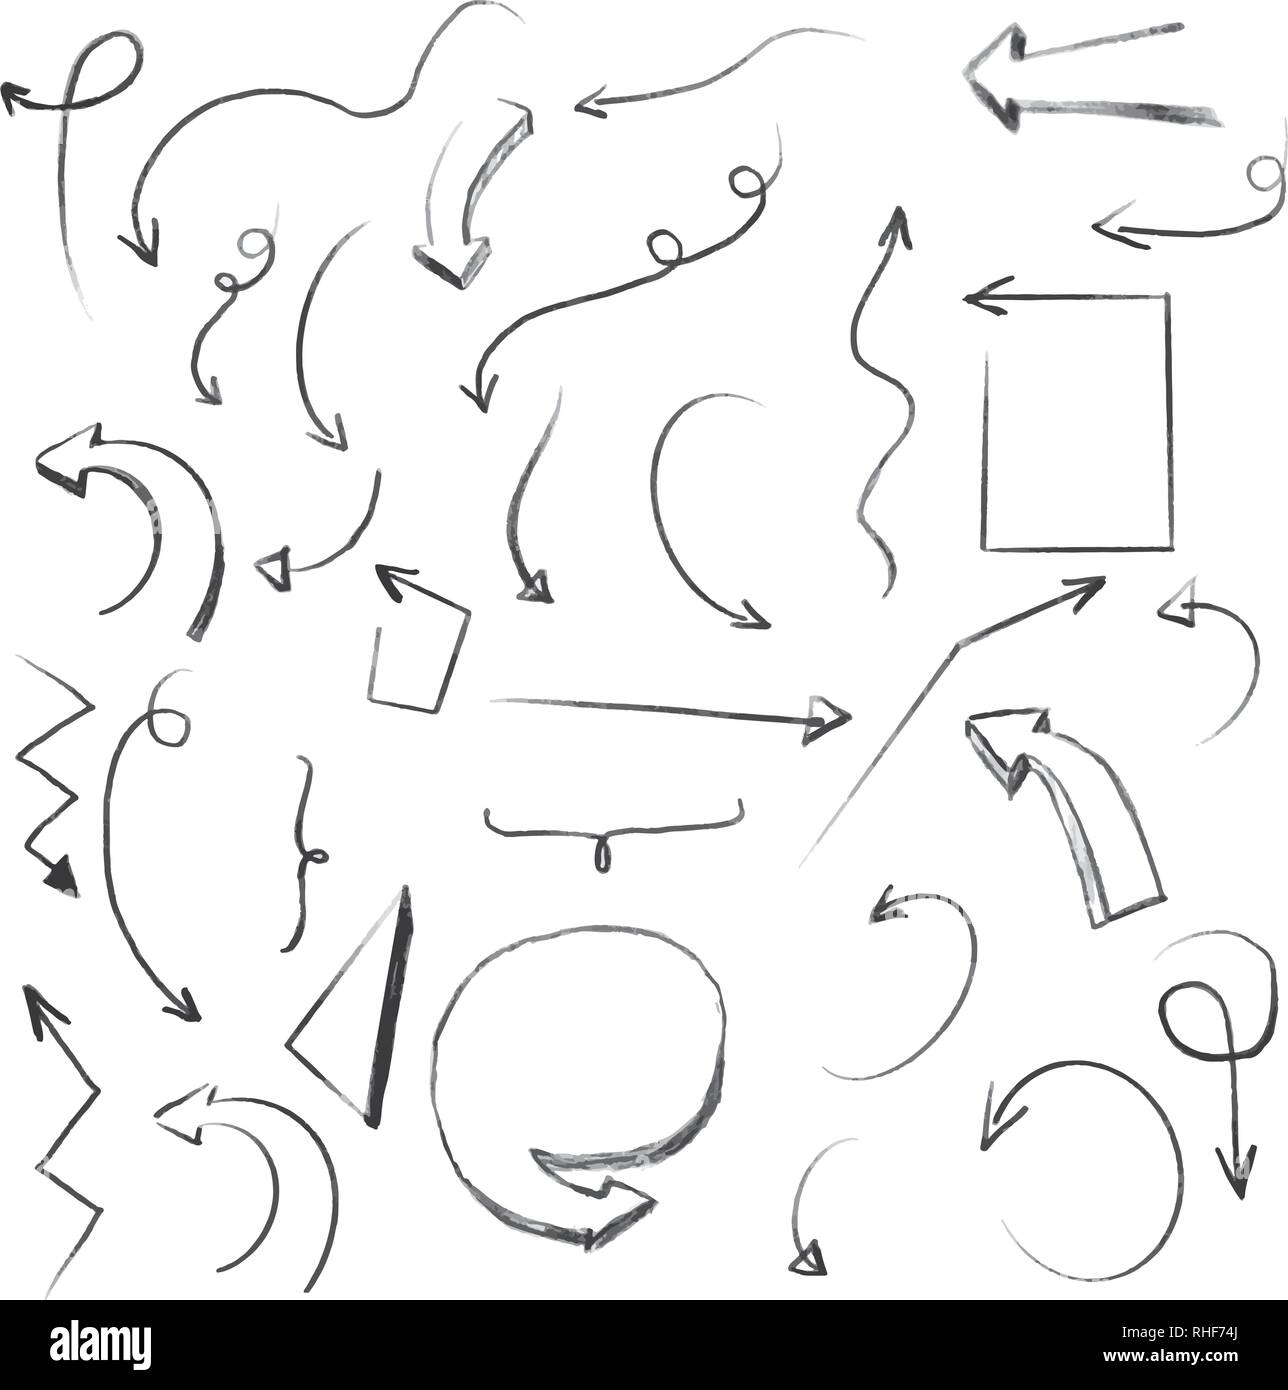 Linear shapes on white. Hand drawn scribble sketches. Array of lines. Black and white illustration. Doodles for design and business - Stock Image